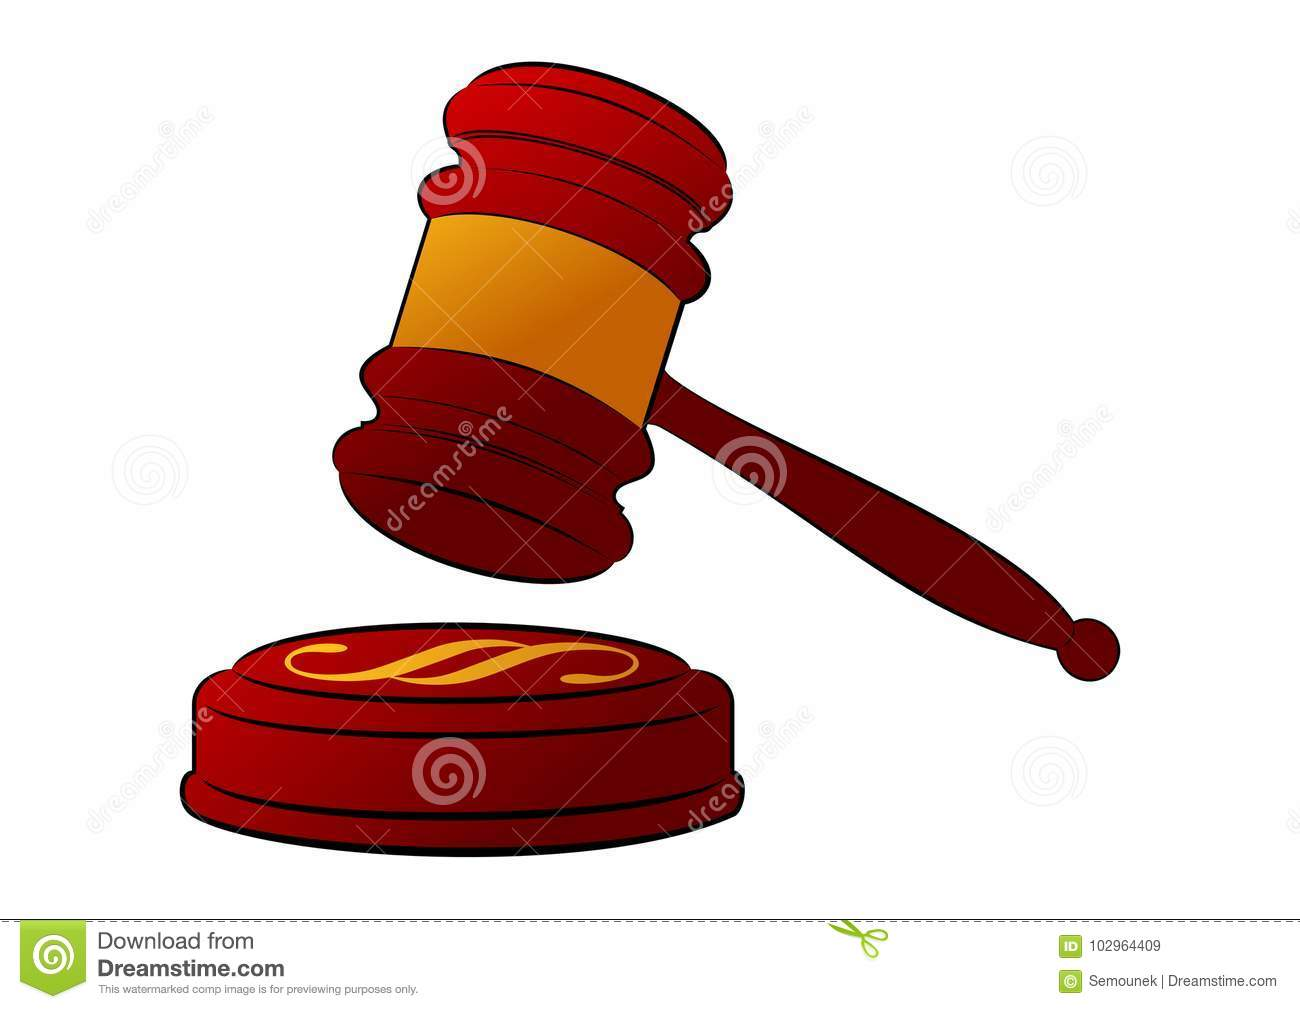 Wooden Judges Gavel With A Golden Stripe Stock Vector